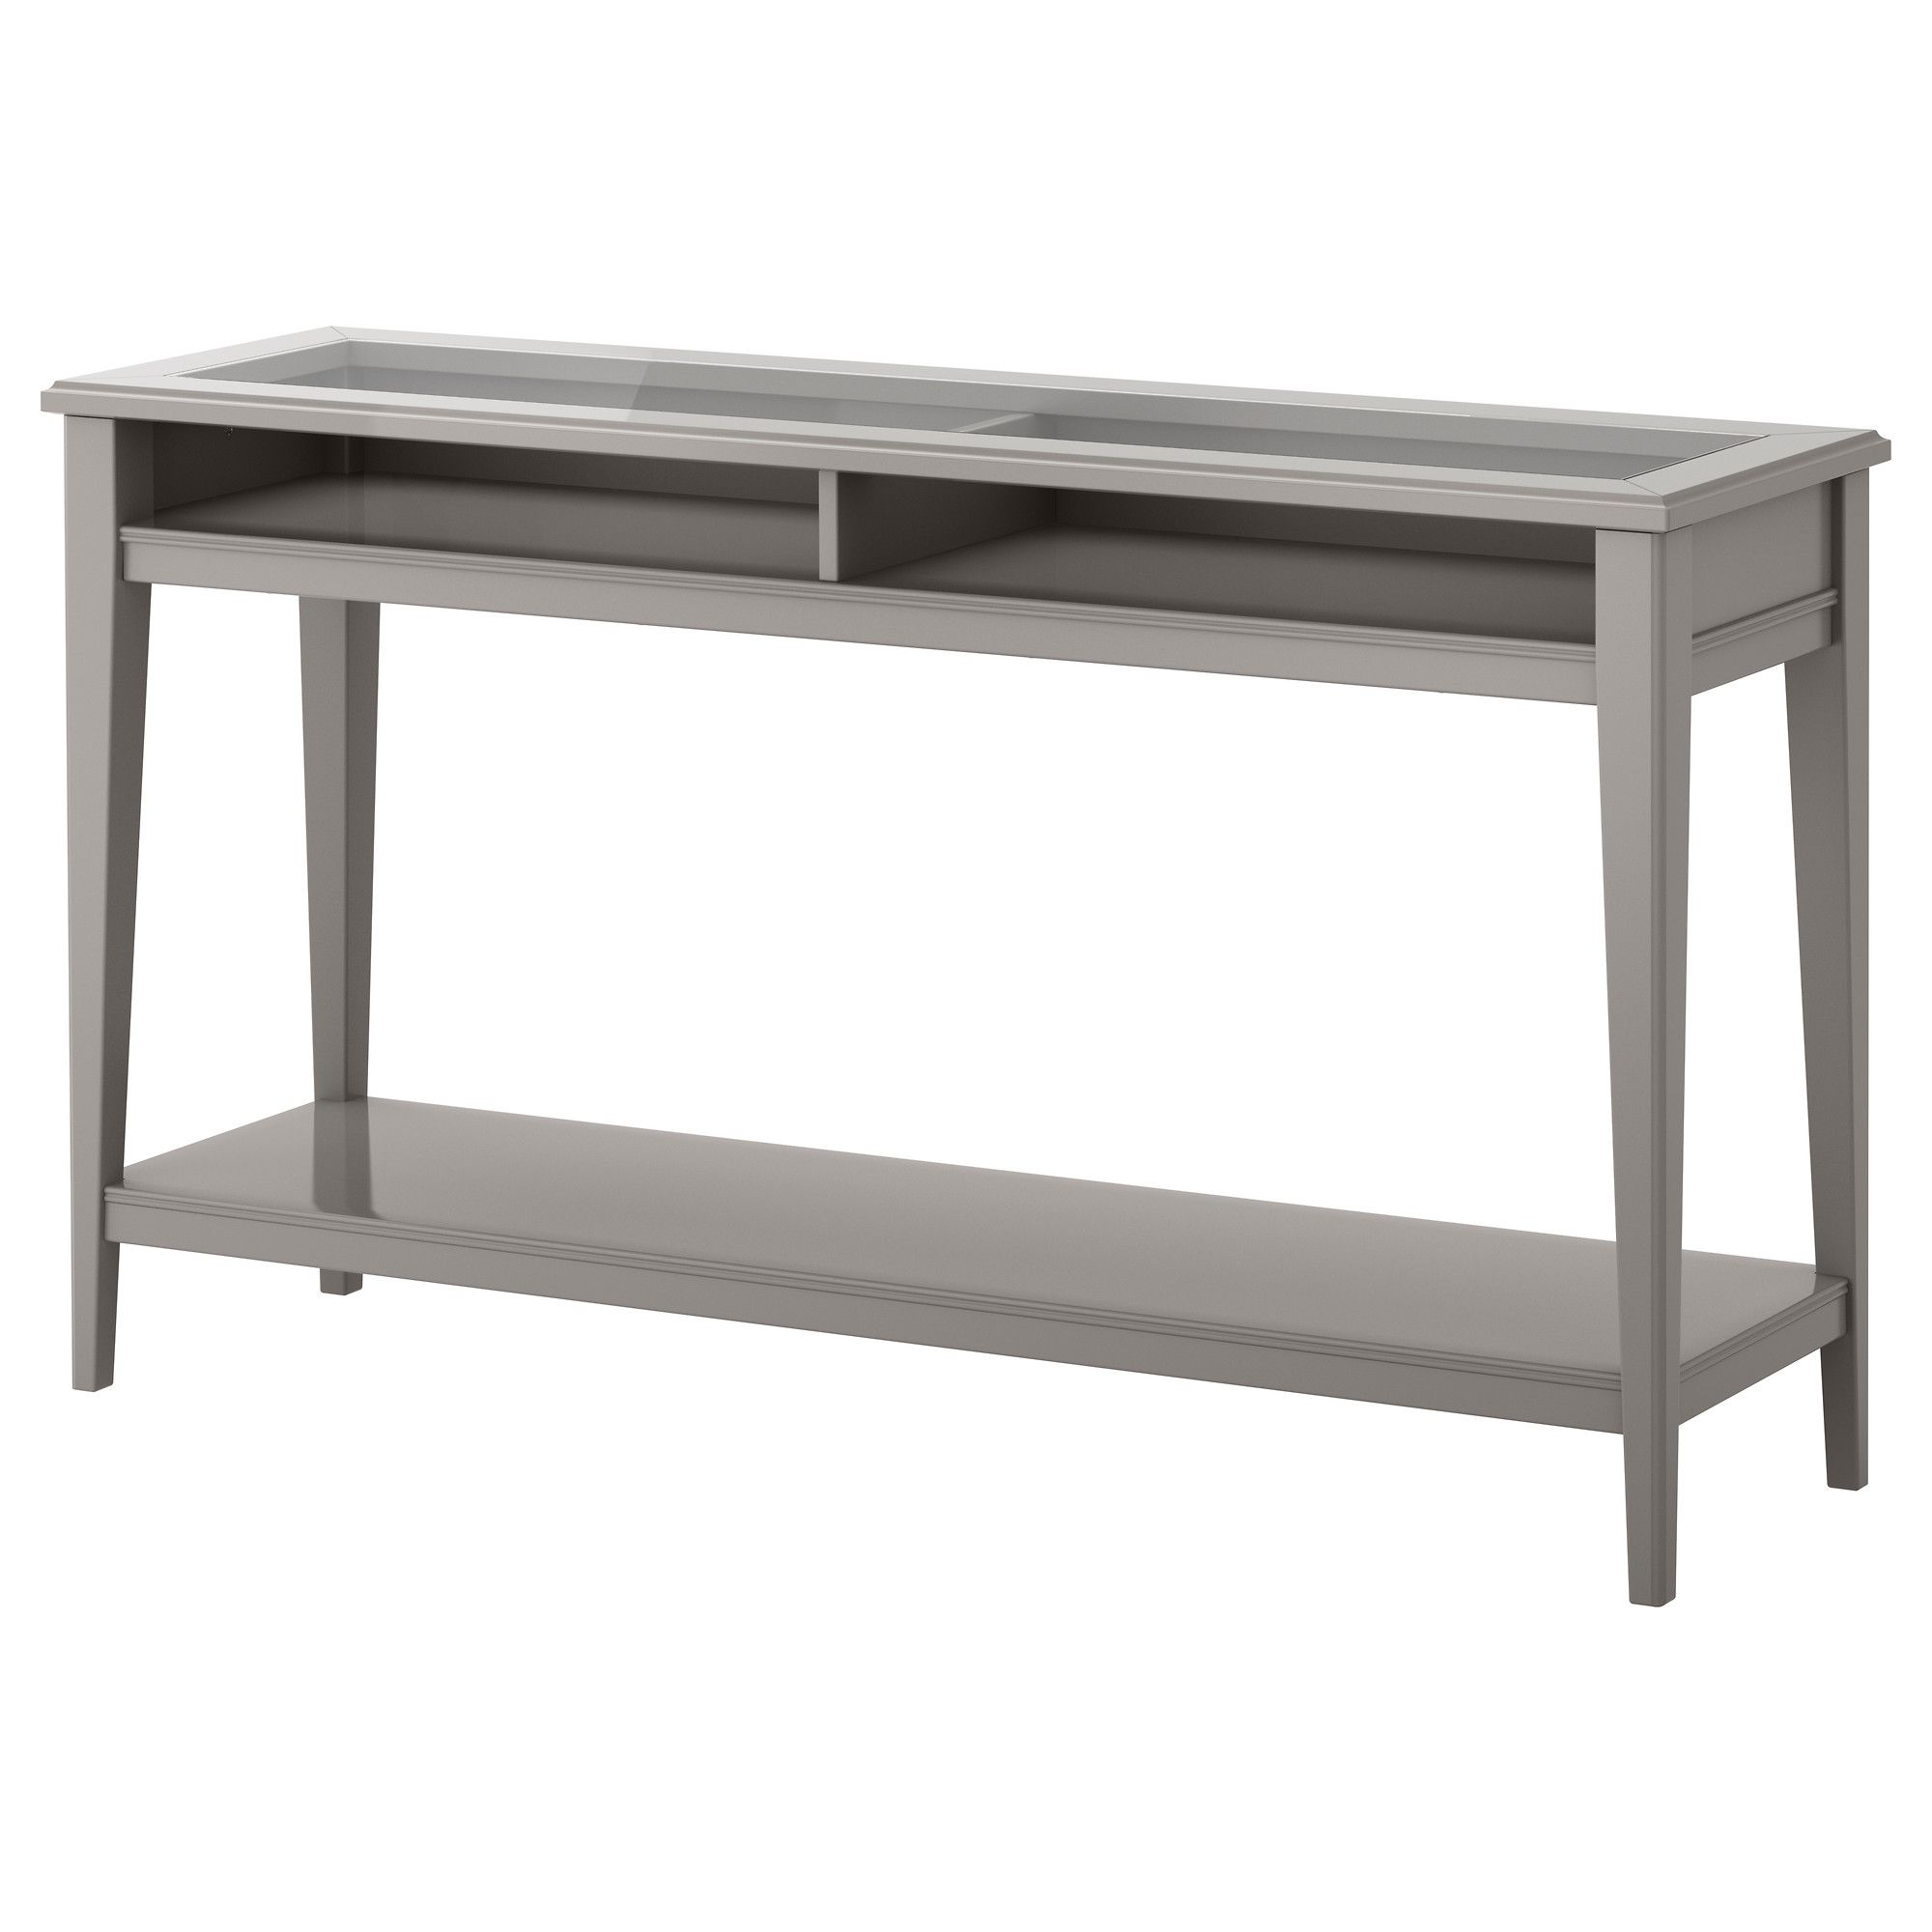 LIATORP Console table gray glass